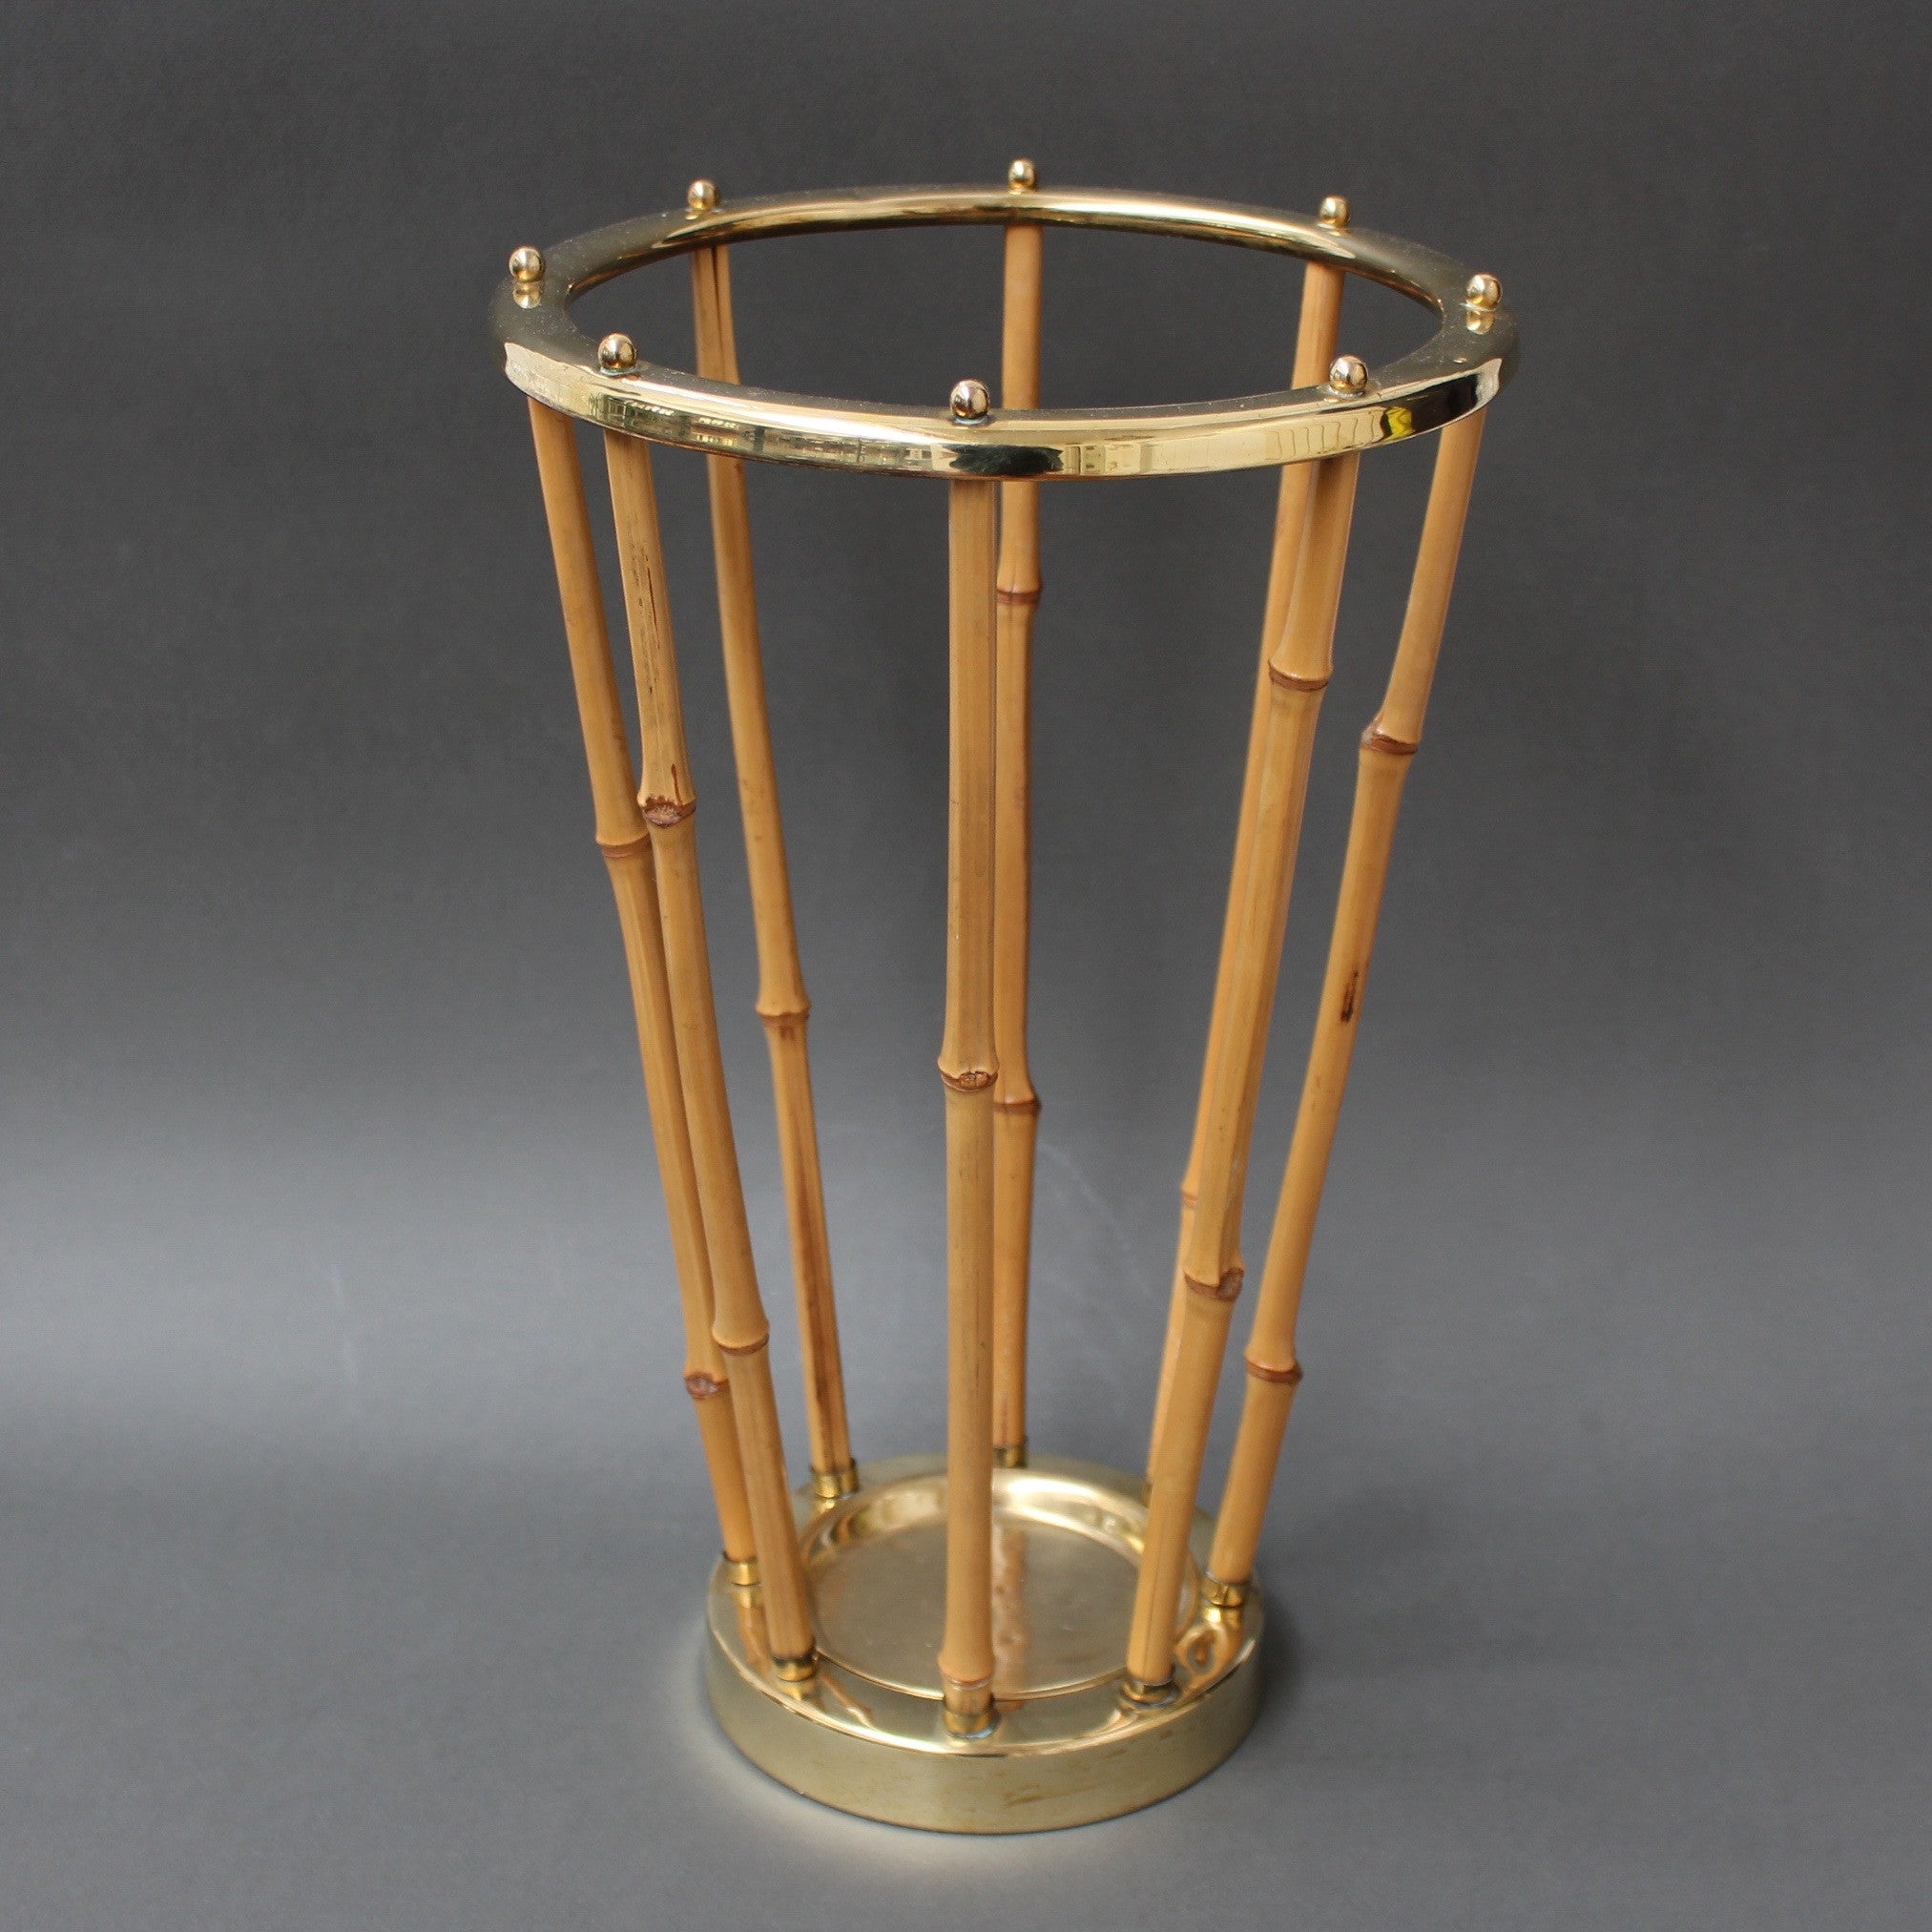 Austrian Modernist Umbrella Stand (c. 1950s)